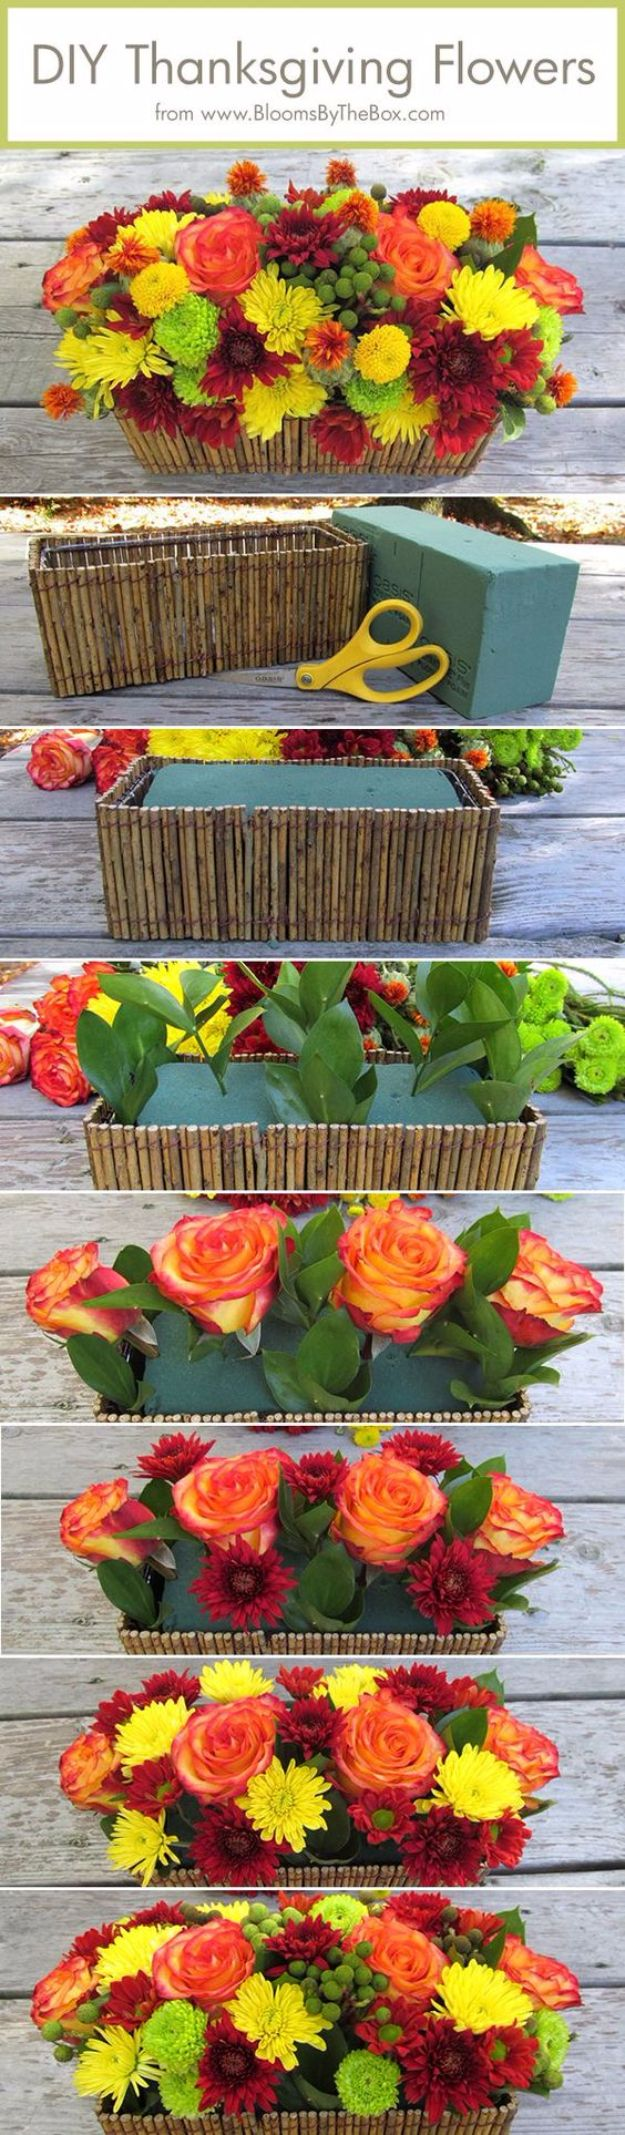 DIY Thanksgiving Decor Ideas - DIY Thanksgiving Flowers - Fall Projects and Crafts for Thanksgiving Dinner Centerpieces, Vases, Arrangements With Leaves and Pumpkins - Easy and Cheap Crafts to Make for Home Decor http://diyjoy.com/diy-thanksgiving-decor-ideas